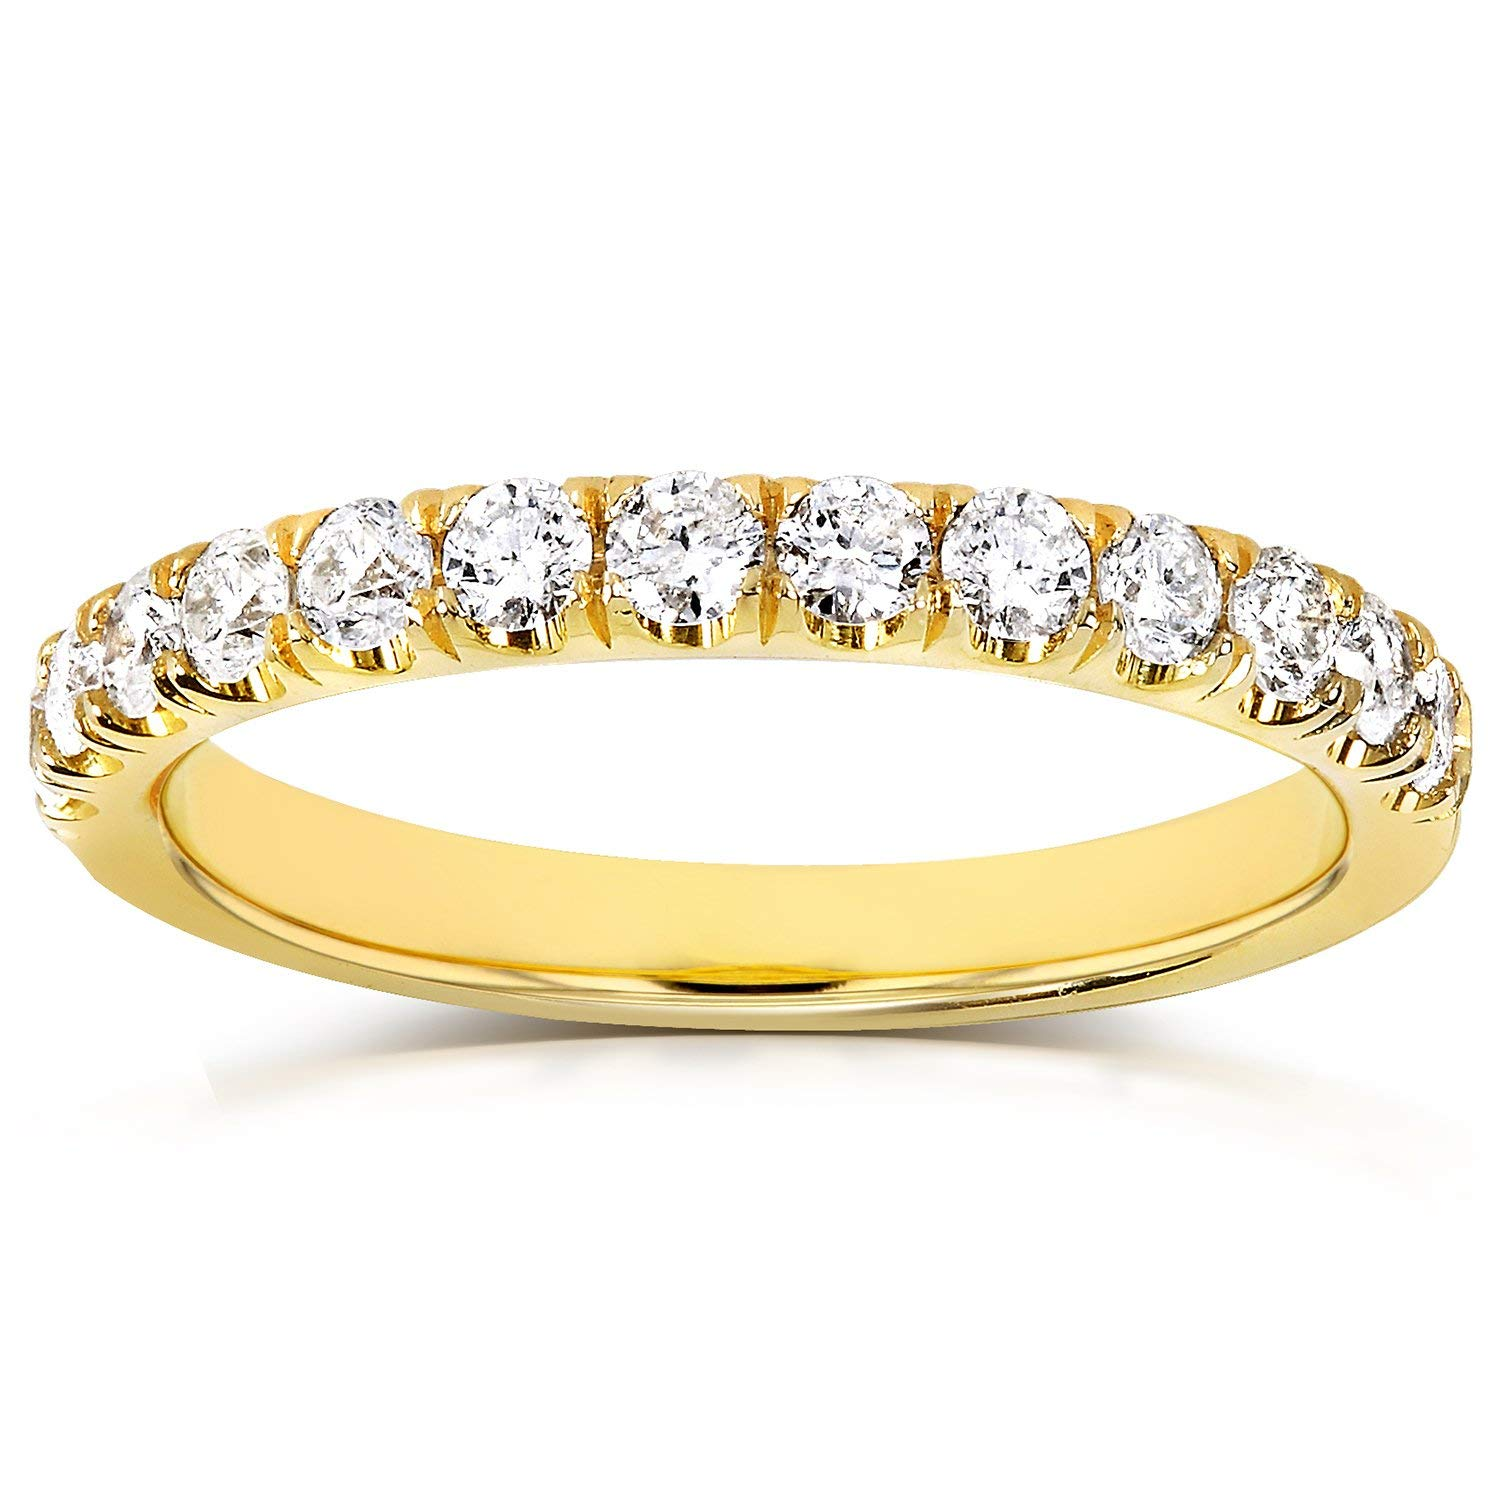 Flame French Pave Lab Grown Diamond Comfort Fit Womens Wedding Band 1/2 CTW 14k Yellow Gold (DEF/VS), 10.5 by Kobelli